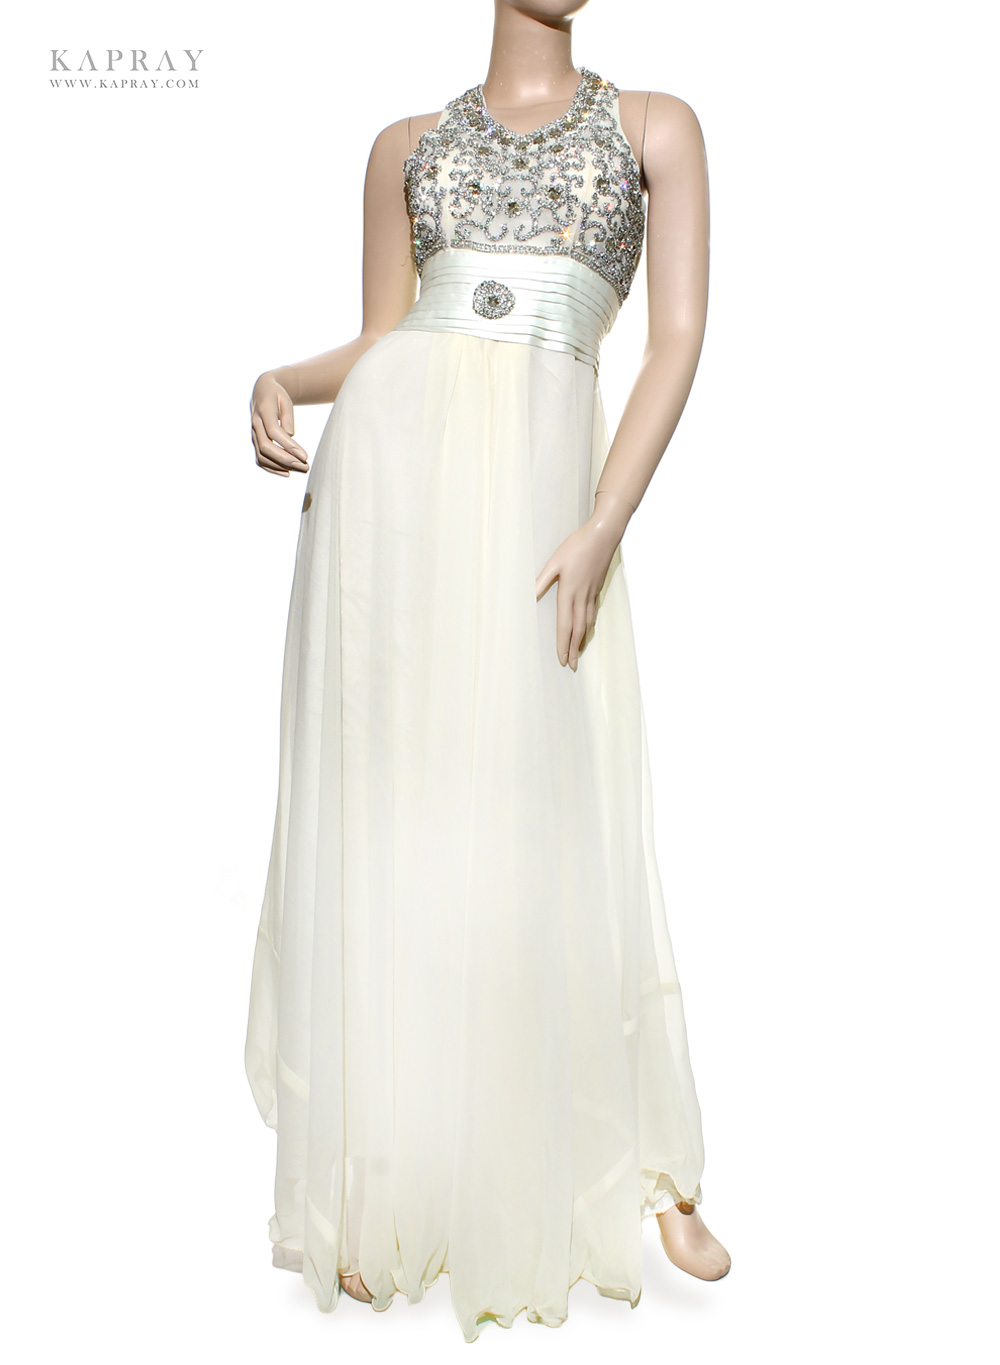 Bridal maxi dress in white kapray for Maxi dresses for wedding party